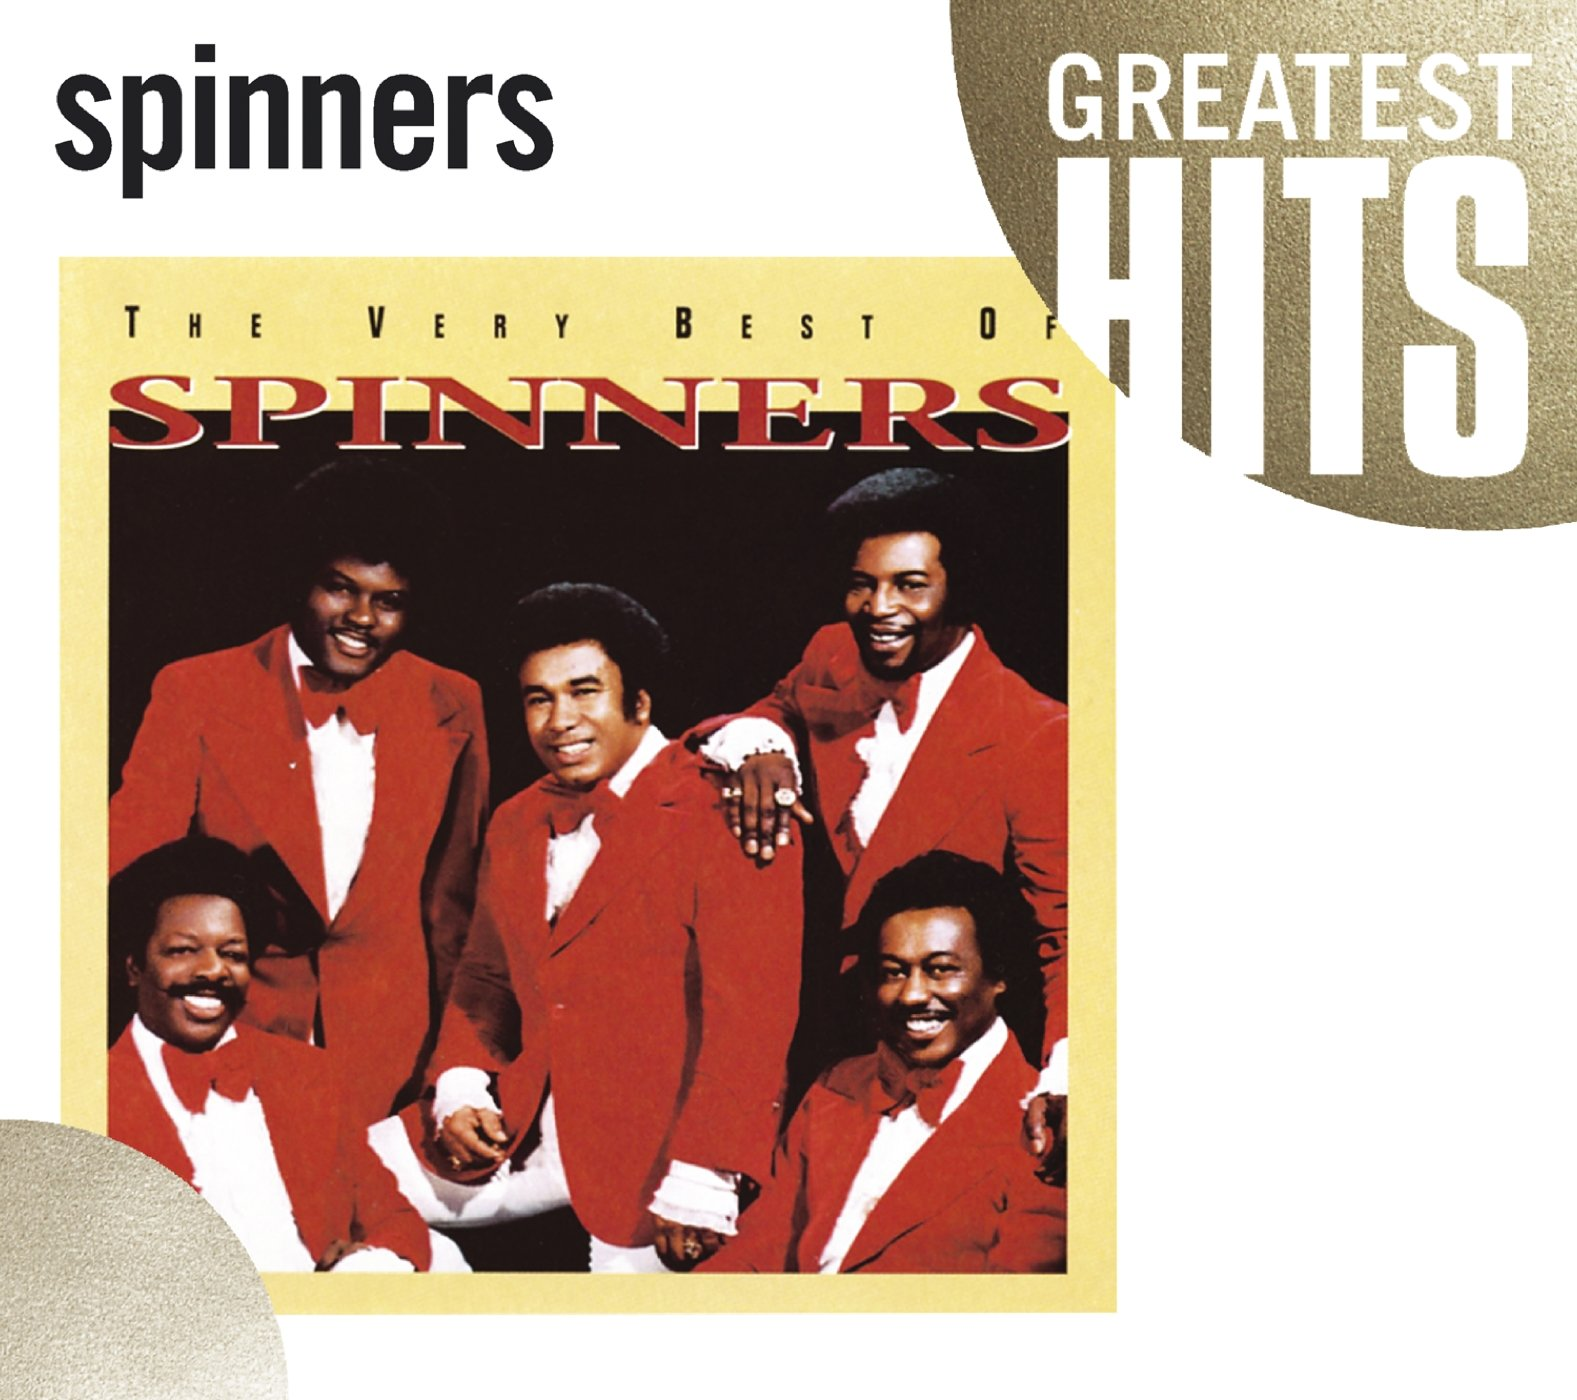 The Very Best of Spinners by spinners